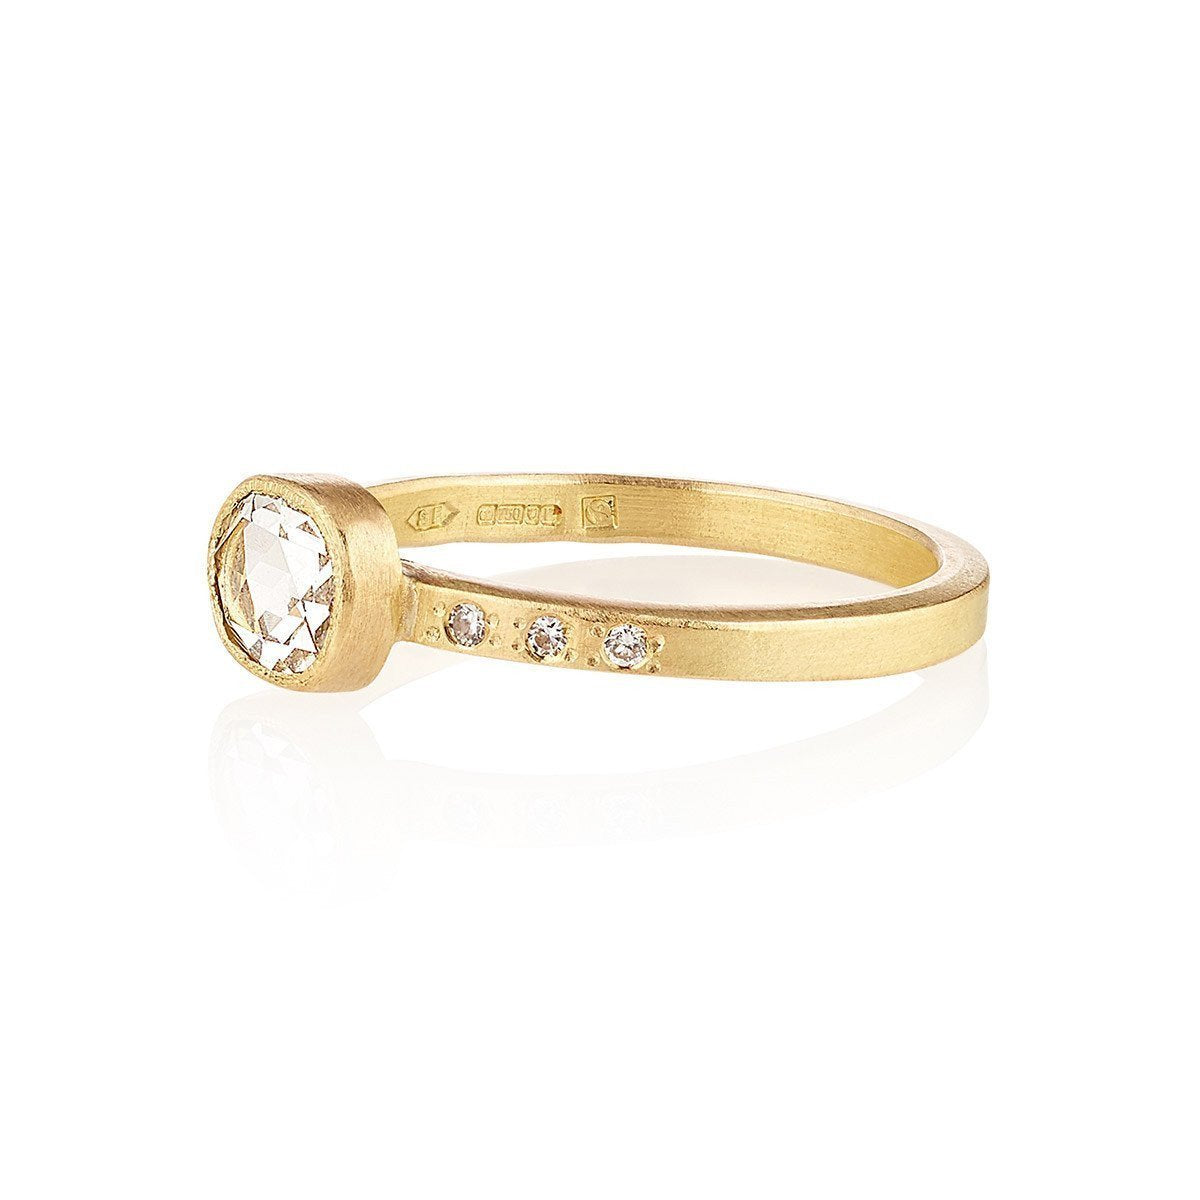 Shakti Ellenwood 18kt Fairtrade Gold Iris Diamond Ring - UK L - US 5 1/2 - EU 51 3/4